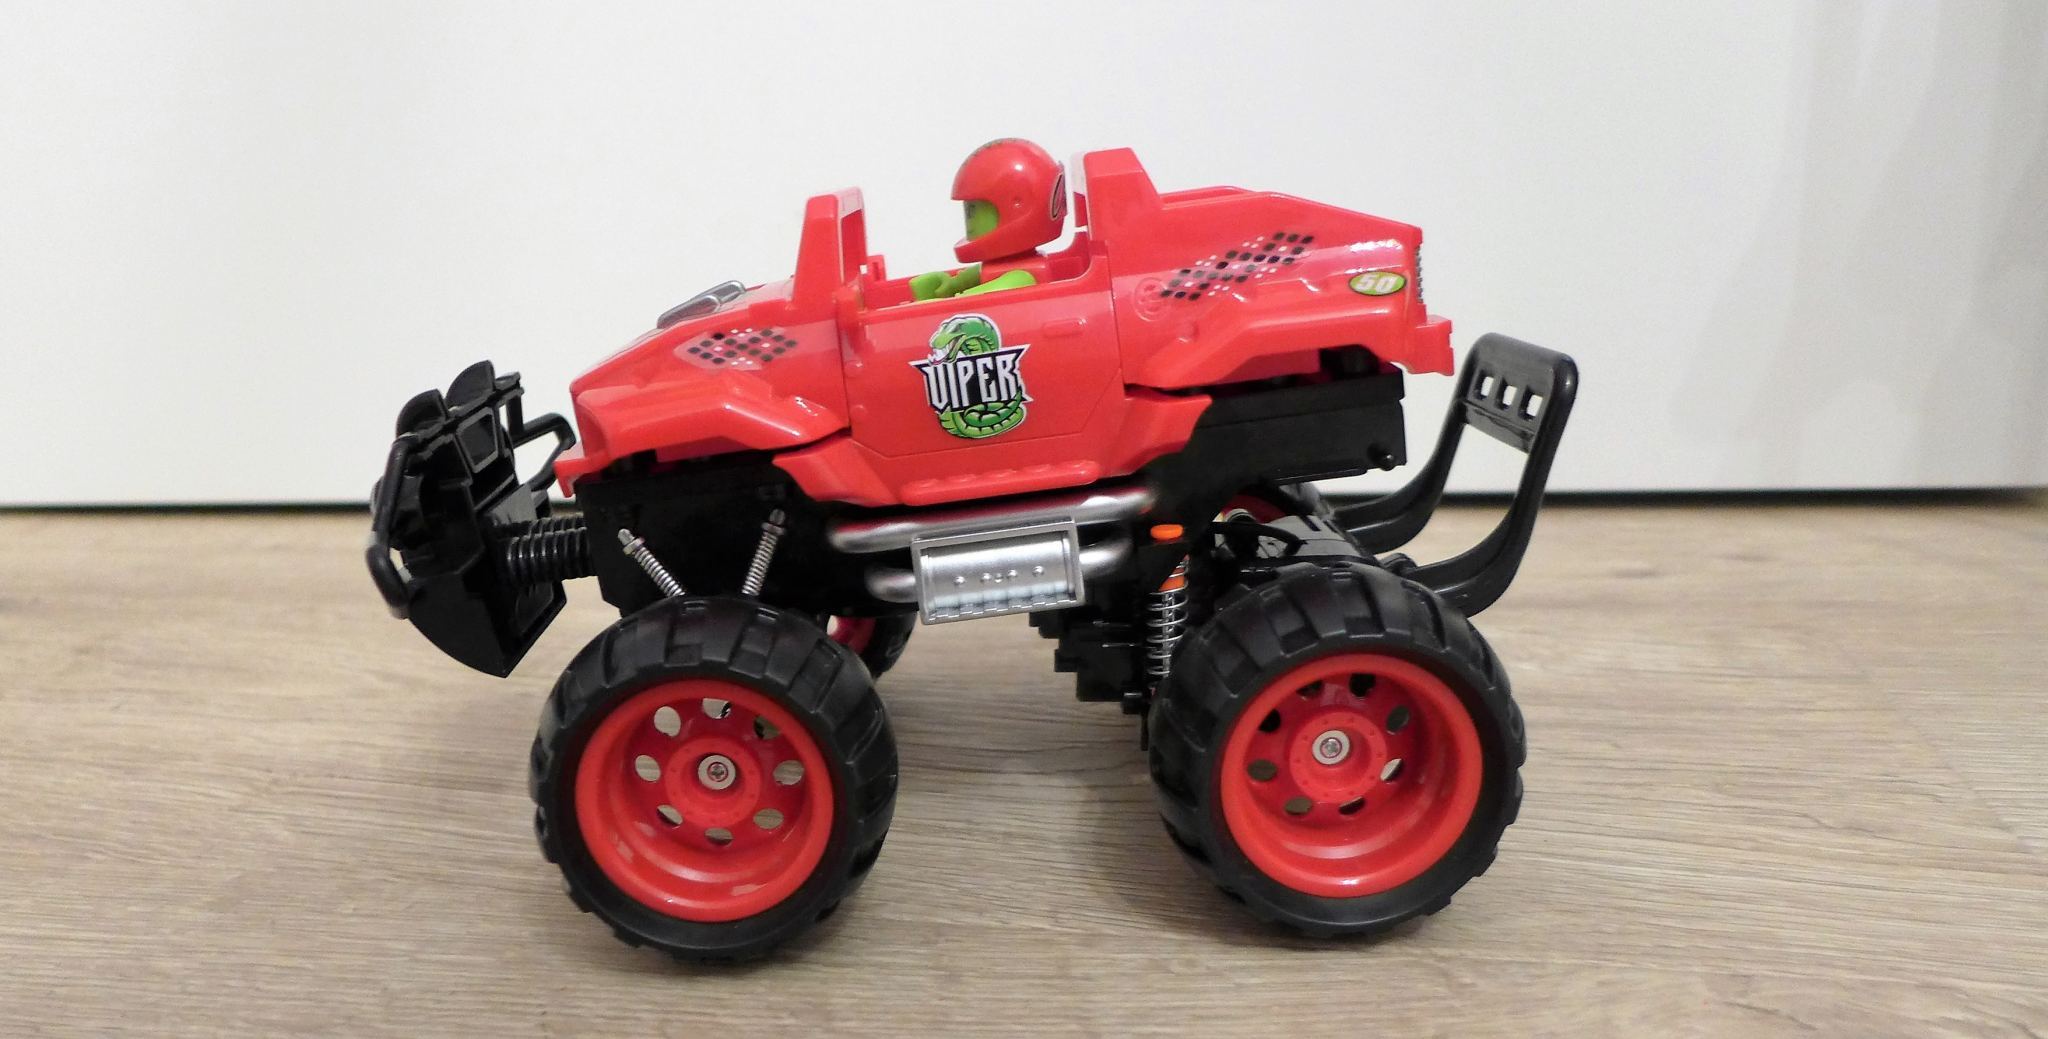 Monster Smash Ups Remote Control Car